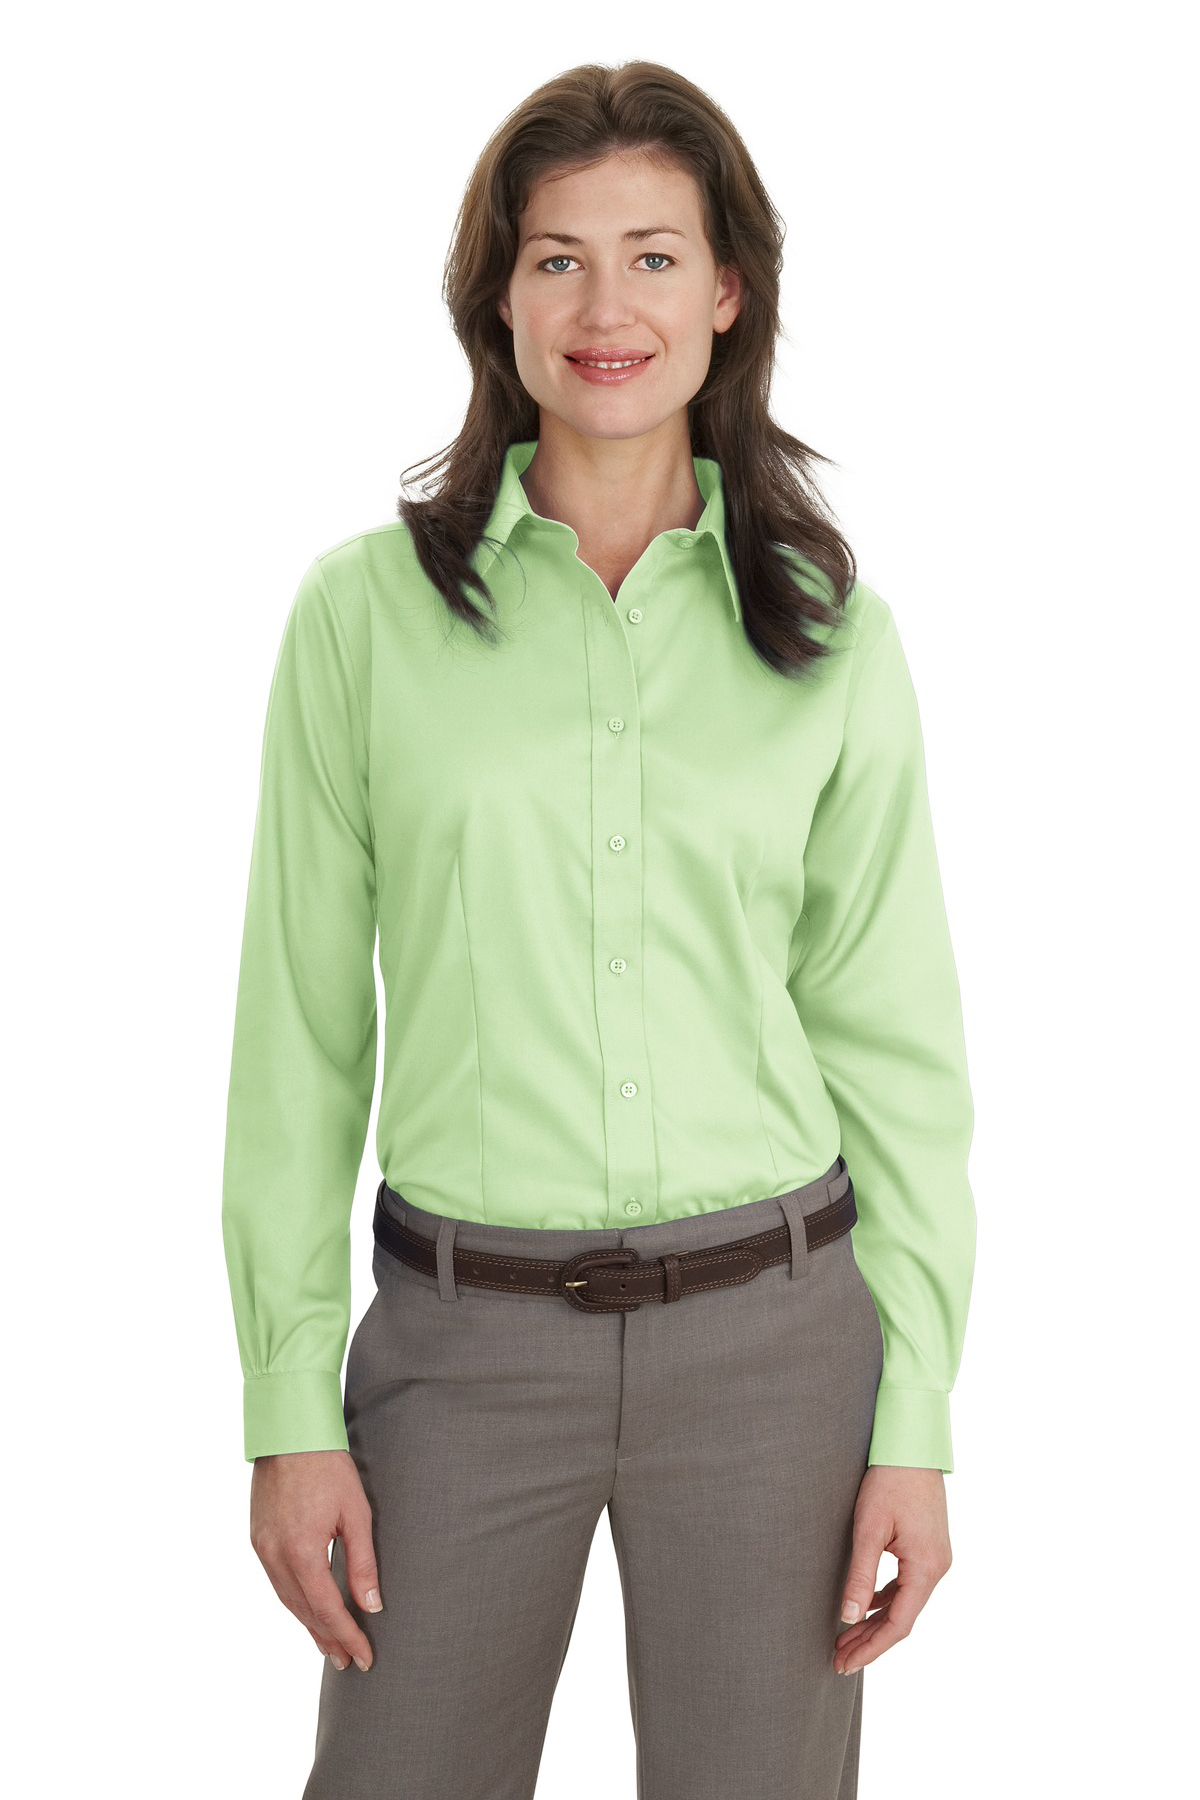 Woven-Shirts-Easy-Care-13